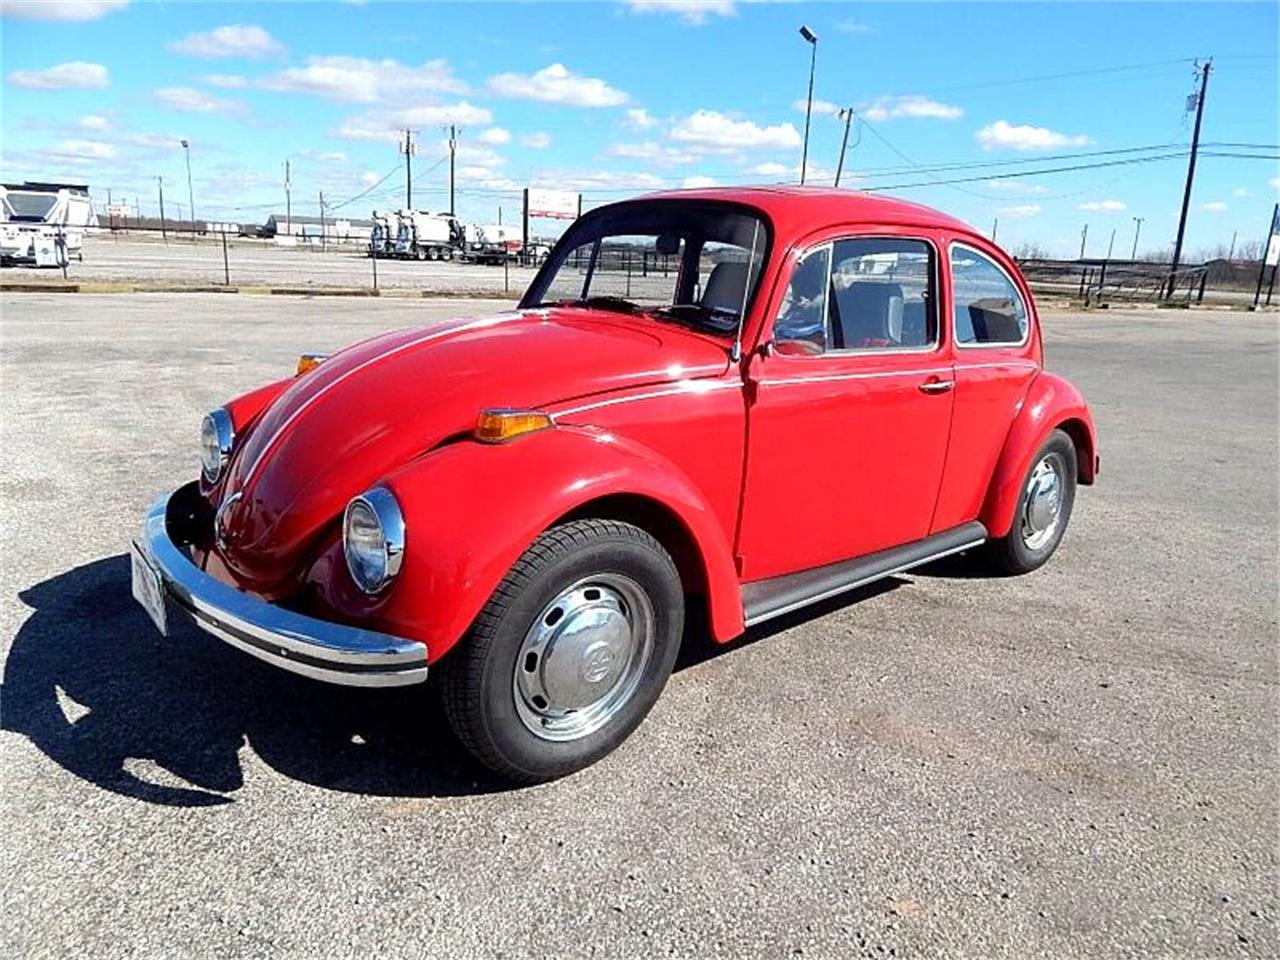 for sale 1970 volkswagen beetle in wichita falls, texas cars - wichita falls, tx at geebo